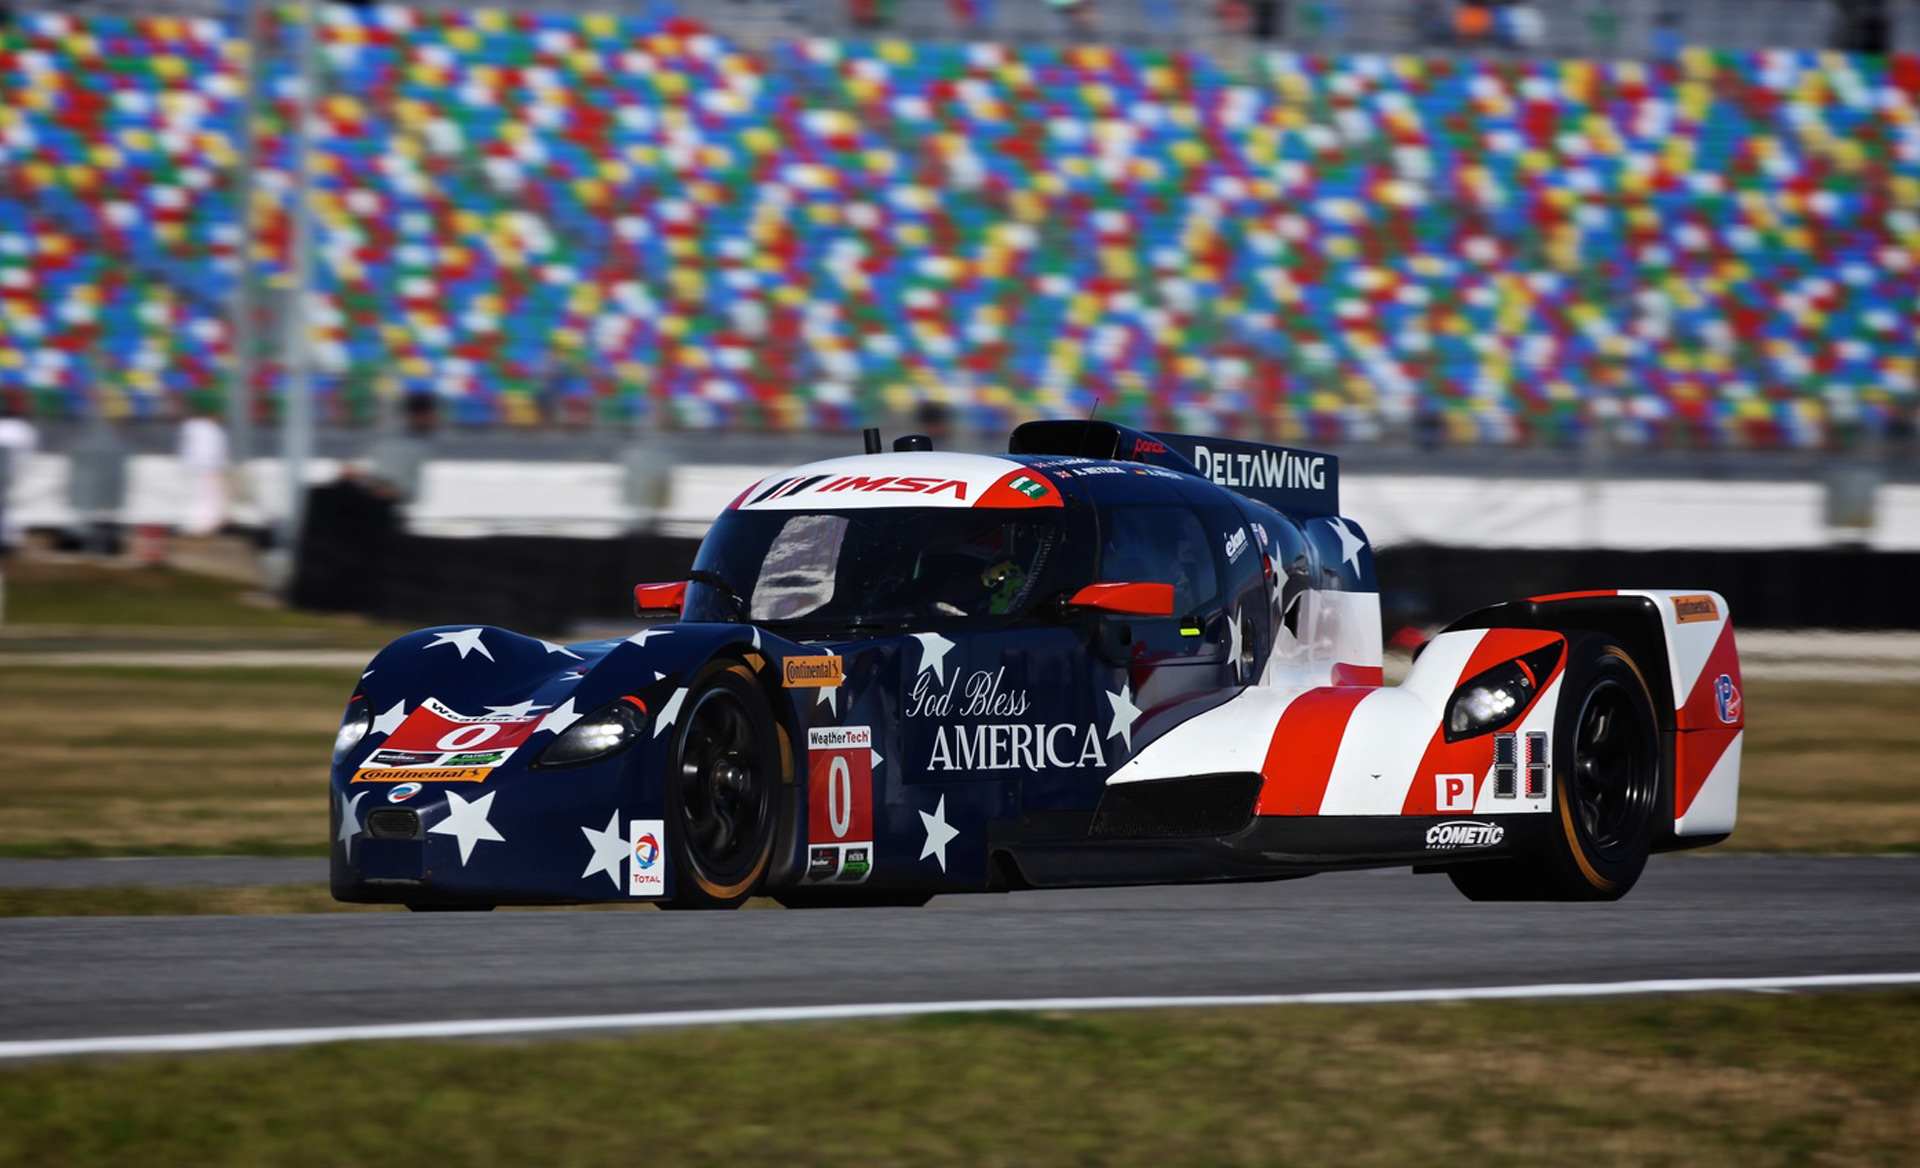 After Successful Start, DeltaWing Suffers Crash At 2016 Rolex 24 ...